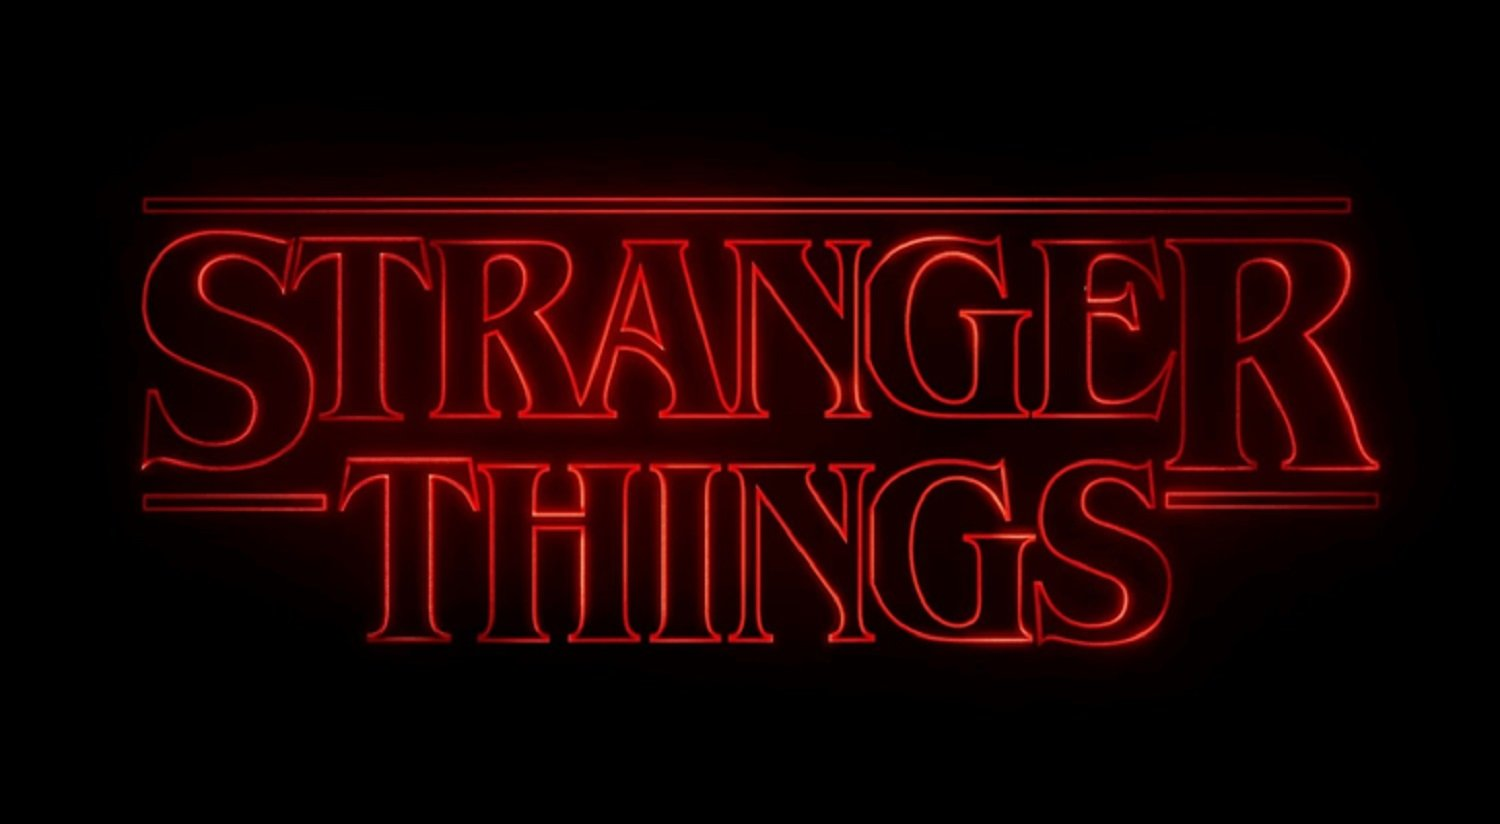 Telltale Is Working On A Stranger Things Game  https://t.co/4kgfnJGgNb https://t.co/I4Ig1x3Ysx